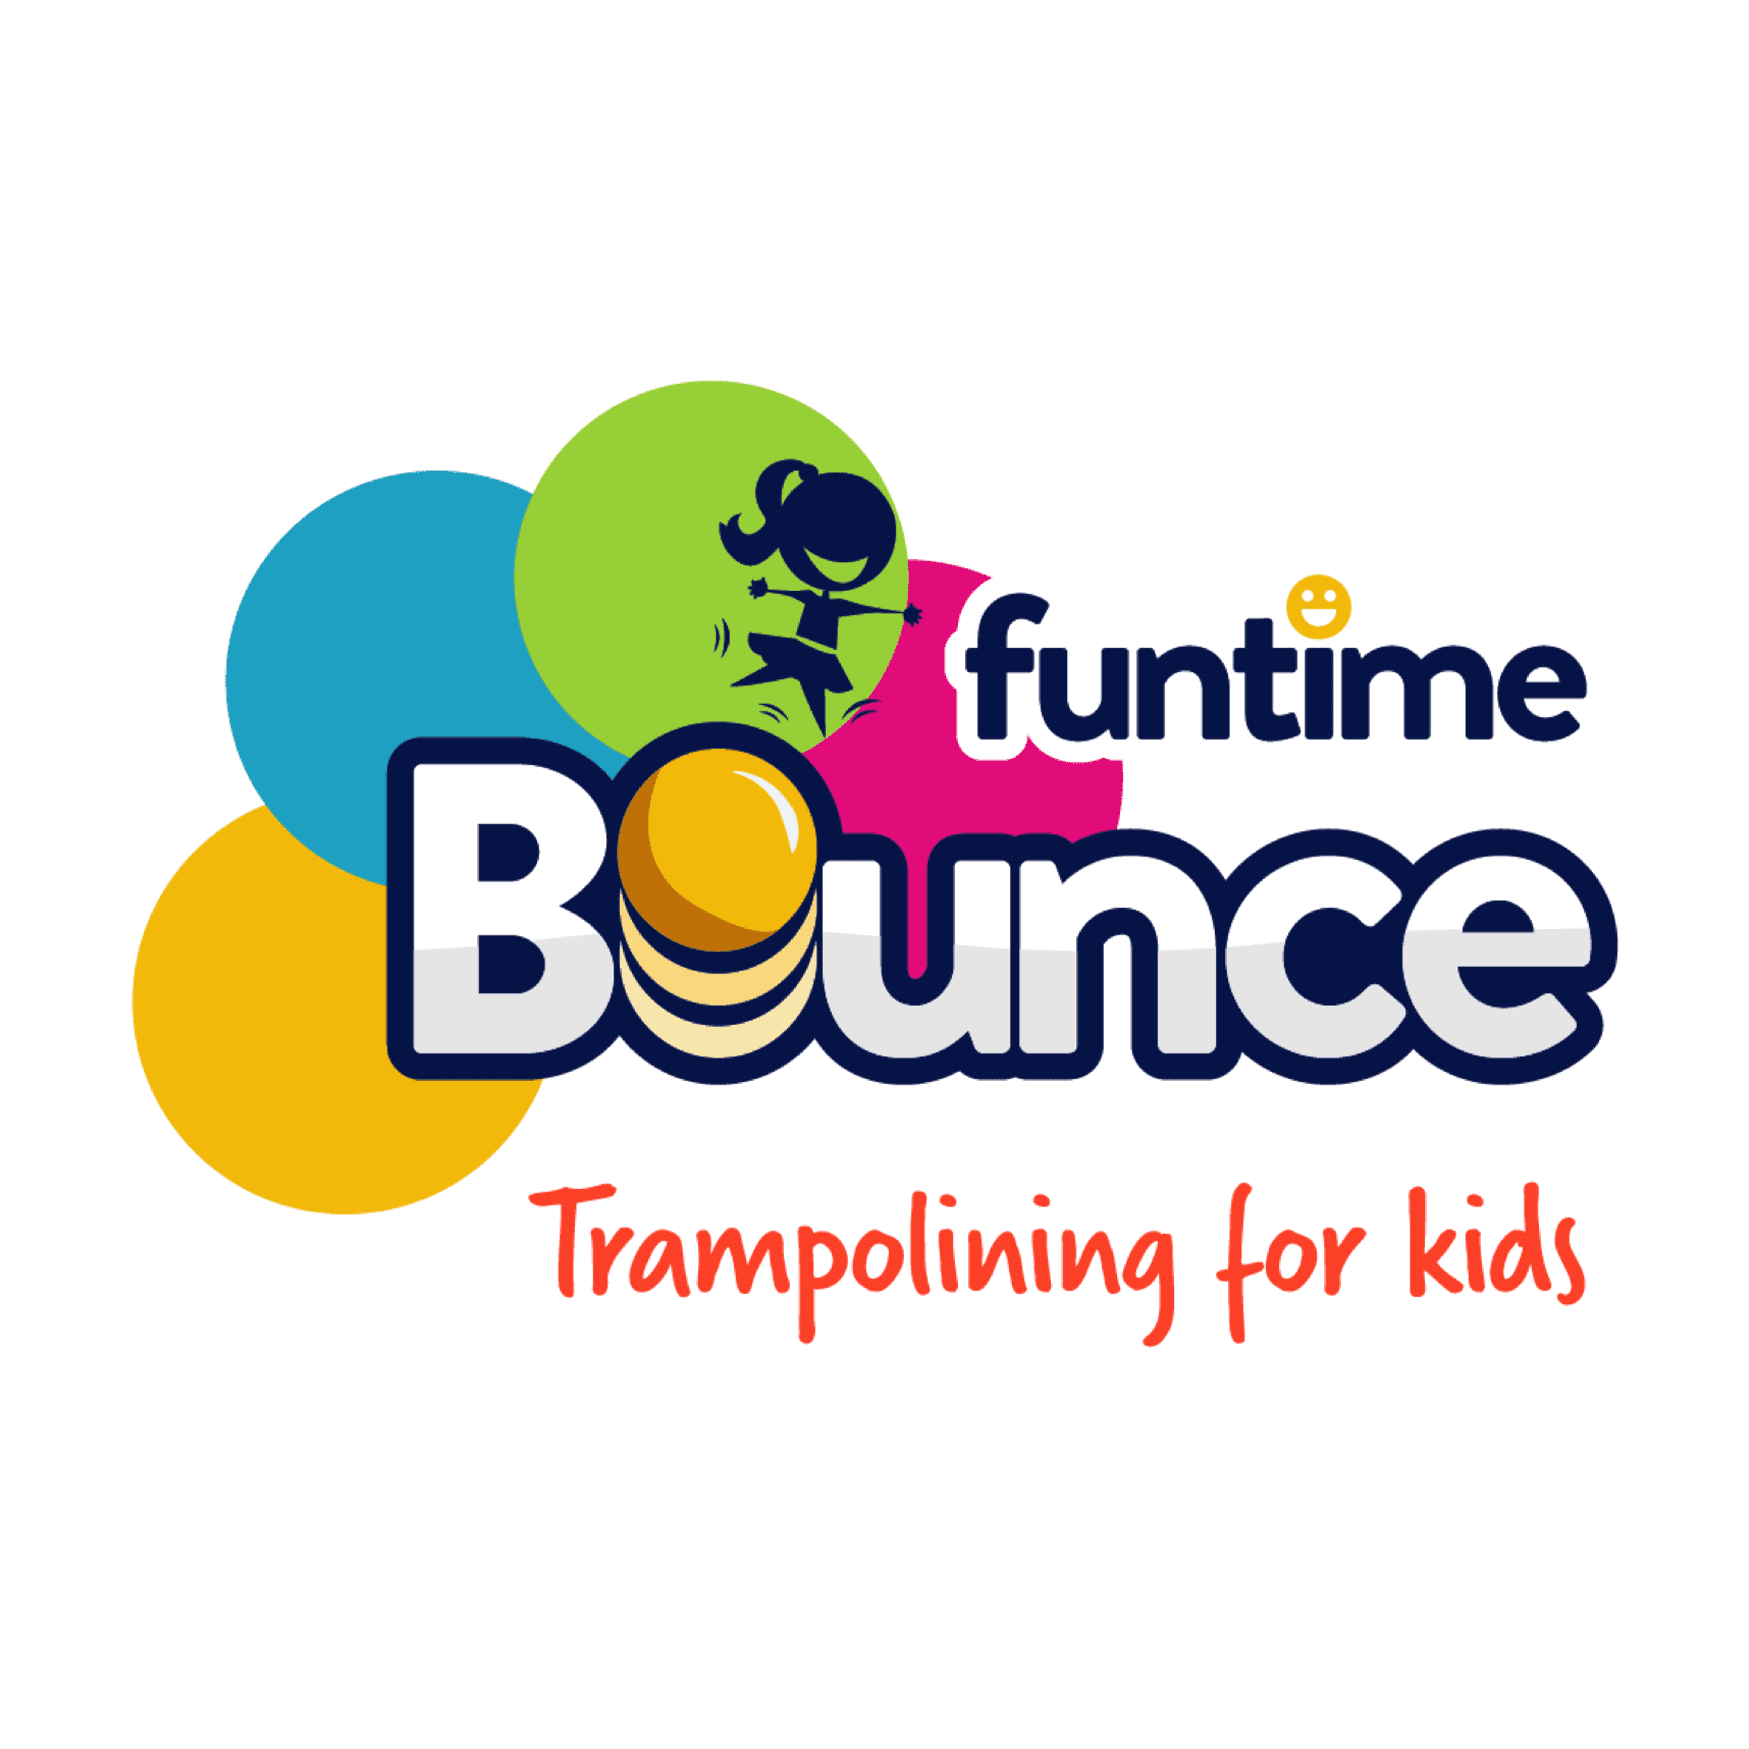 Funtime - Trampolining for Kids